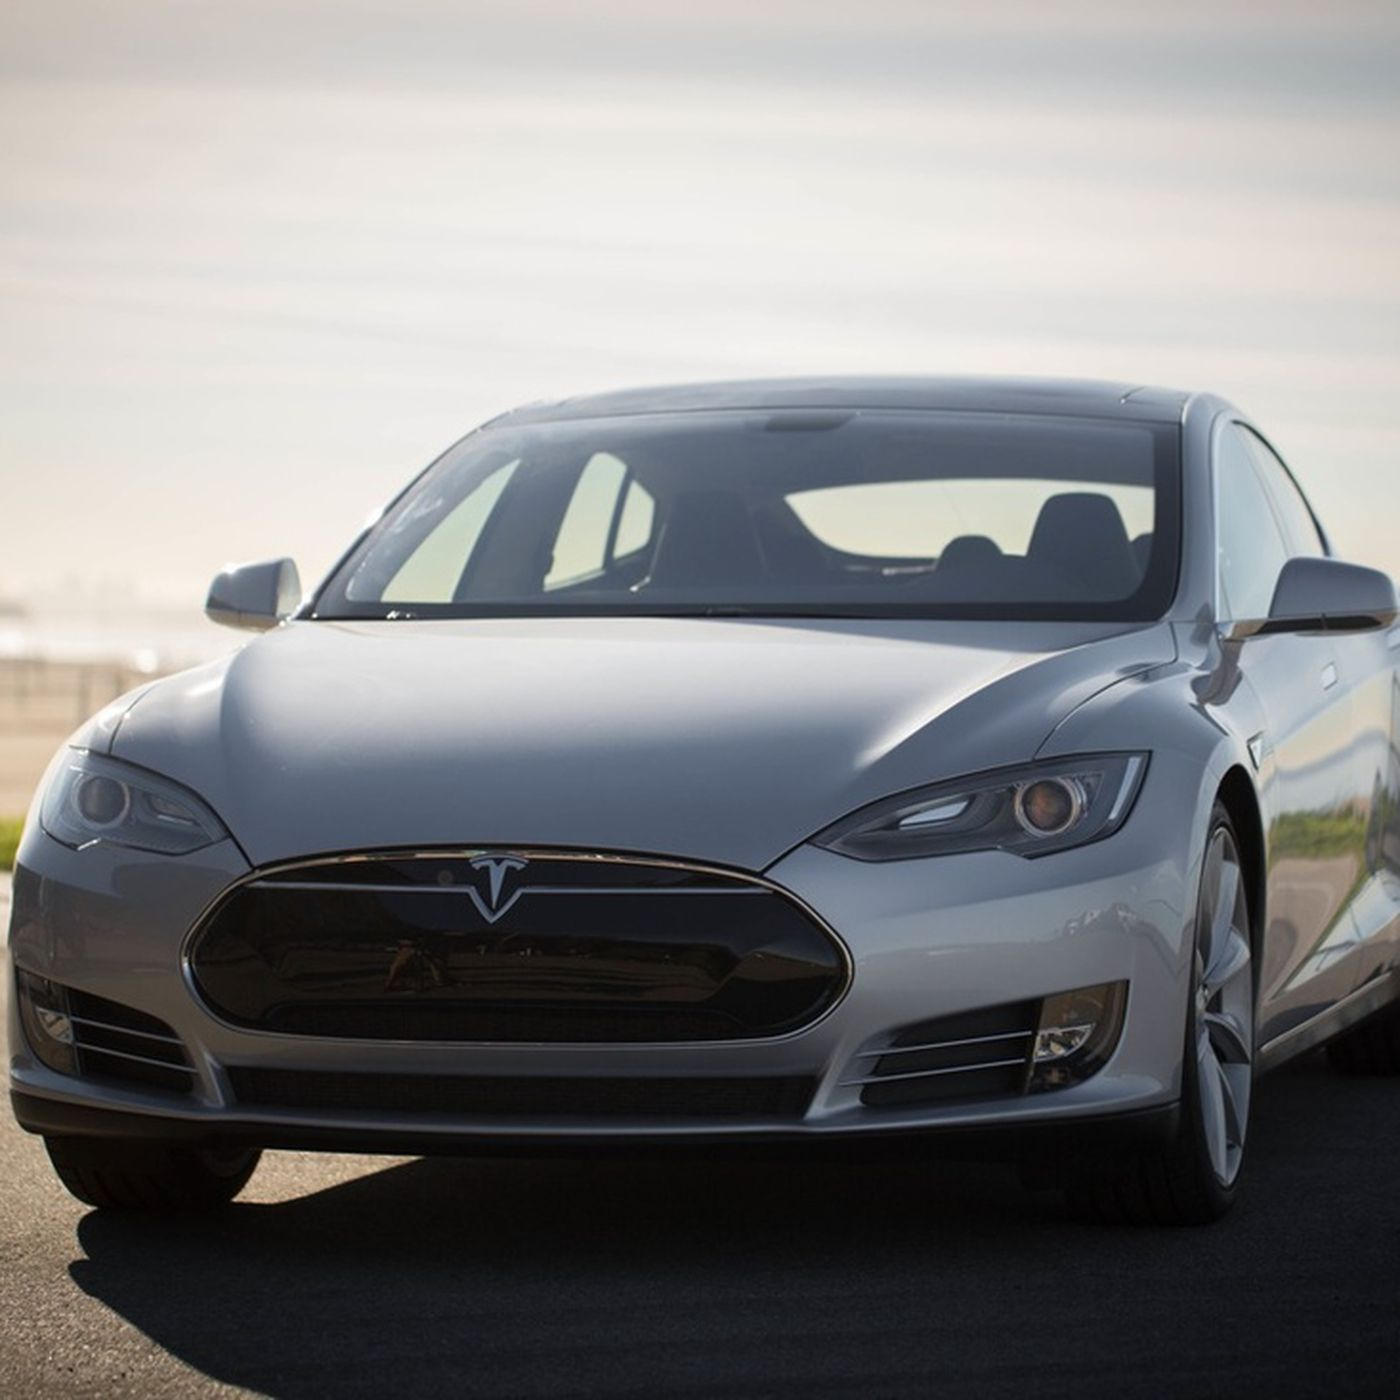 Tesla recalls all 90,000 Model S cars over faulty seat belt - The Verge